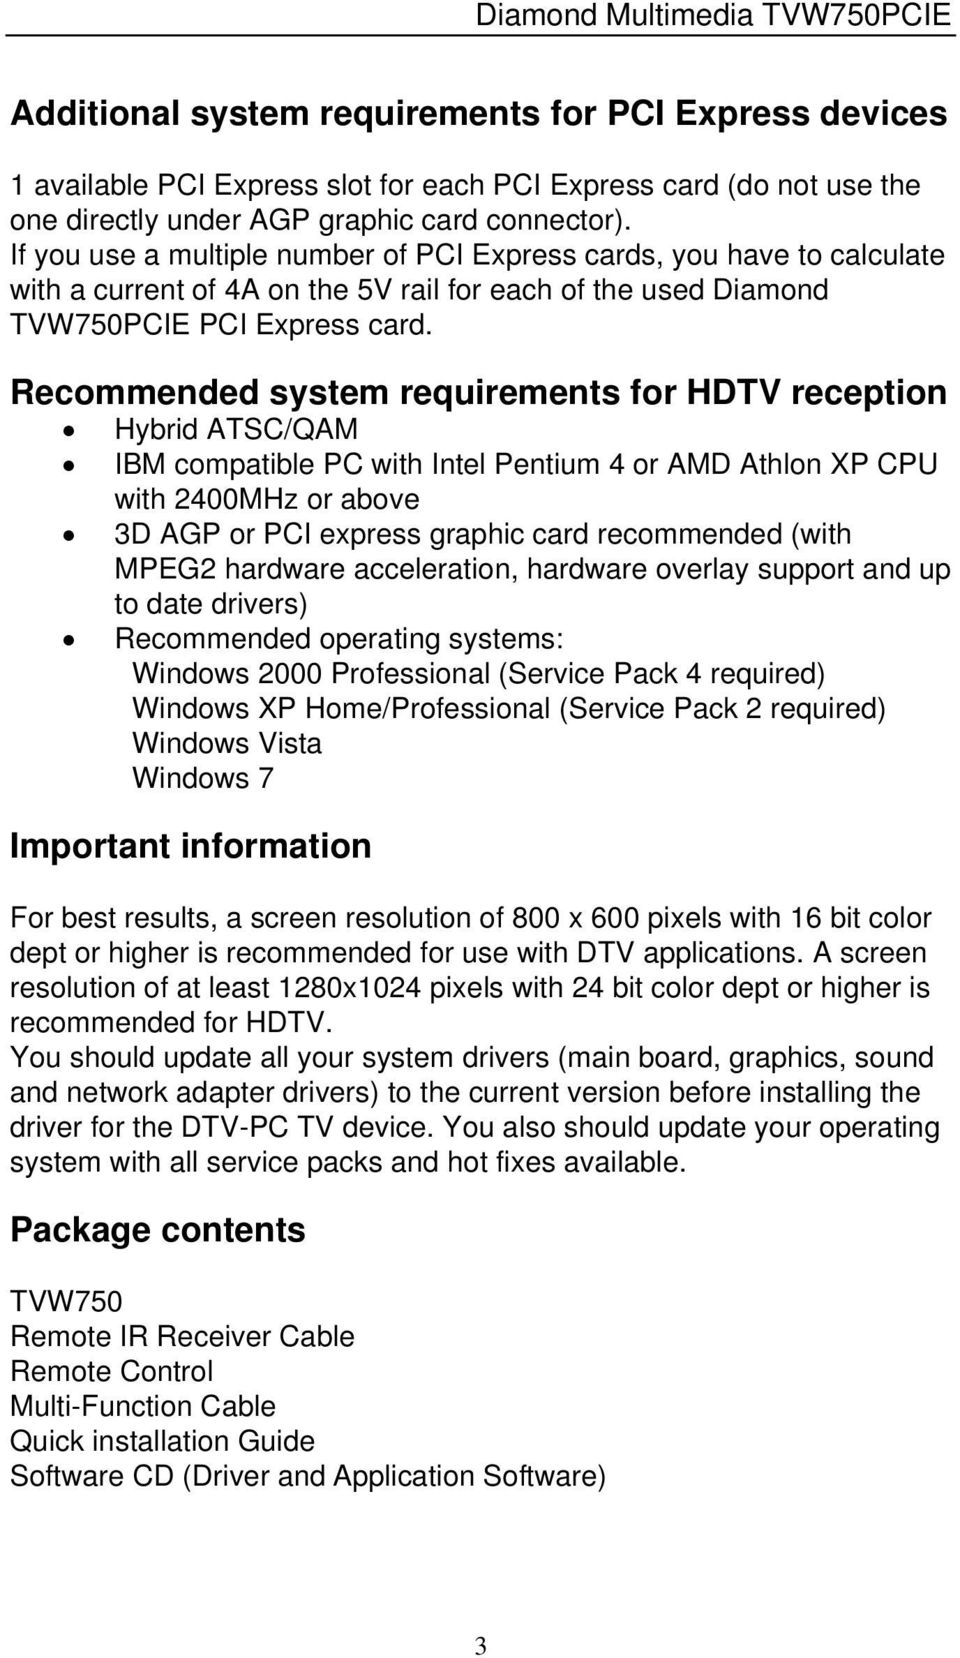 Recommended system requirements for HDTV reception Hybrid ATSC/QAM IBM compatible PC with Intel Pentium 4 or AMD Athlon XP CPU with 2400MHz or above 3D AGP or PCI express graphic card recommended